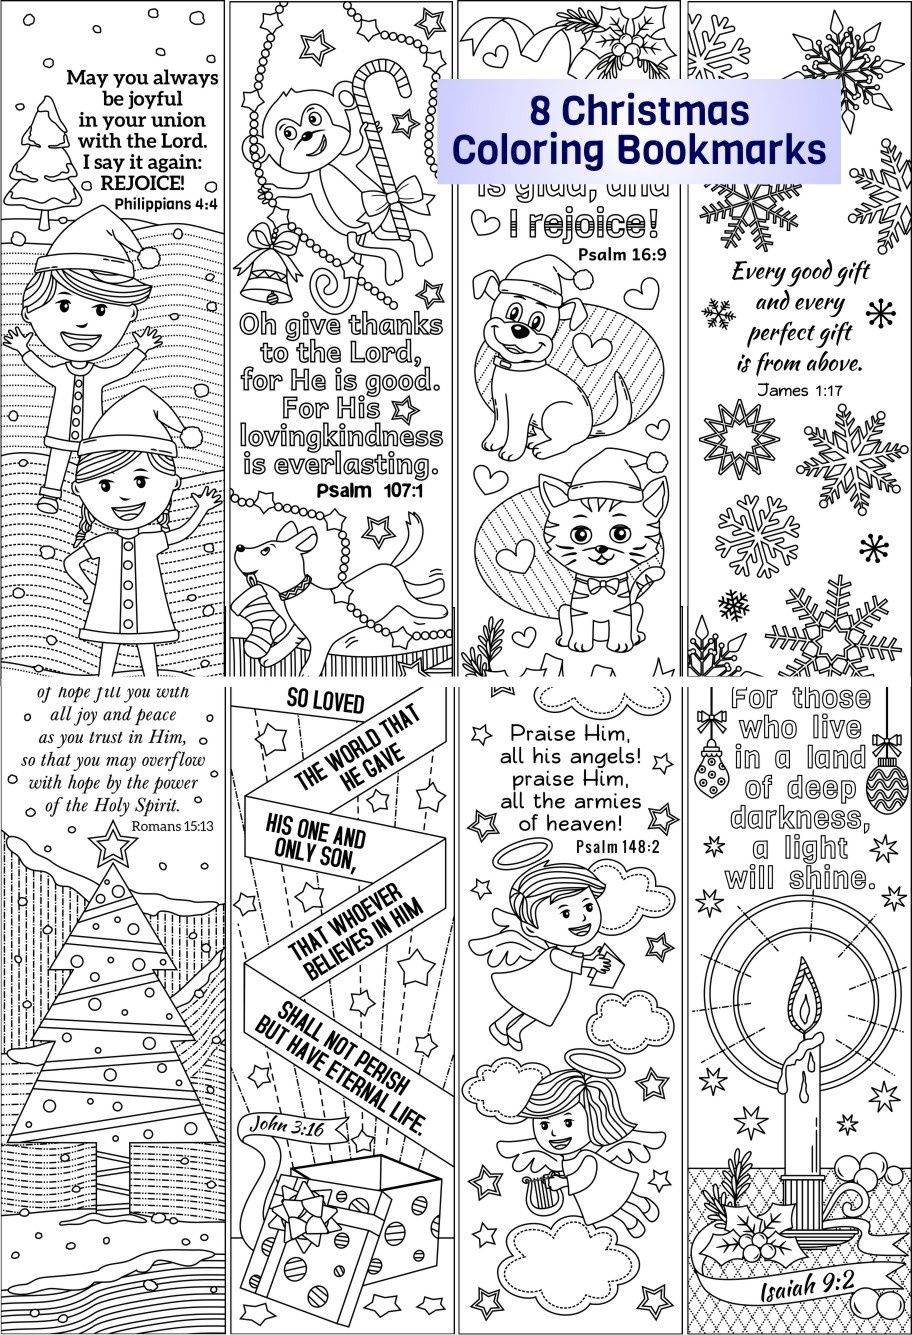 Christmas Coloring Bookmarks With Plus Colored Items